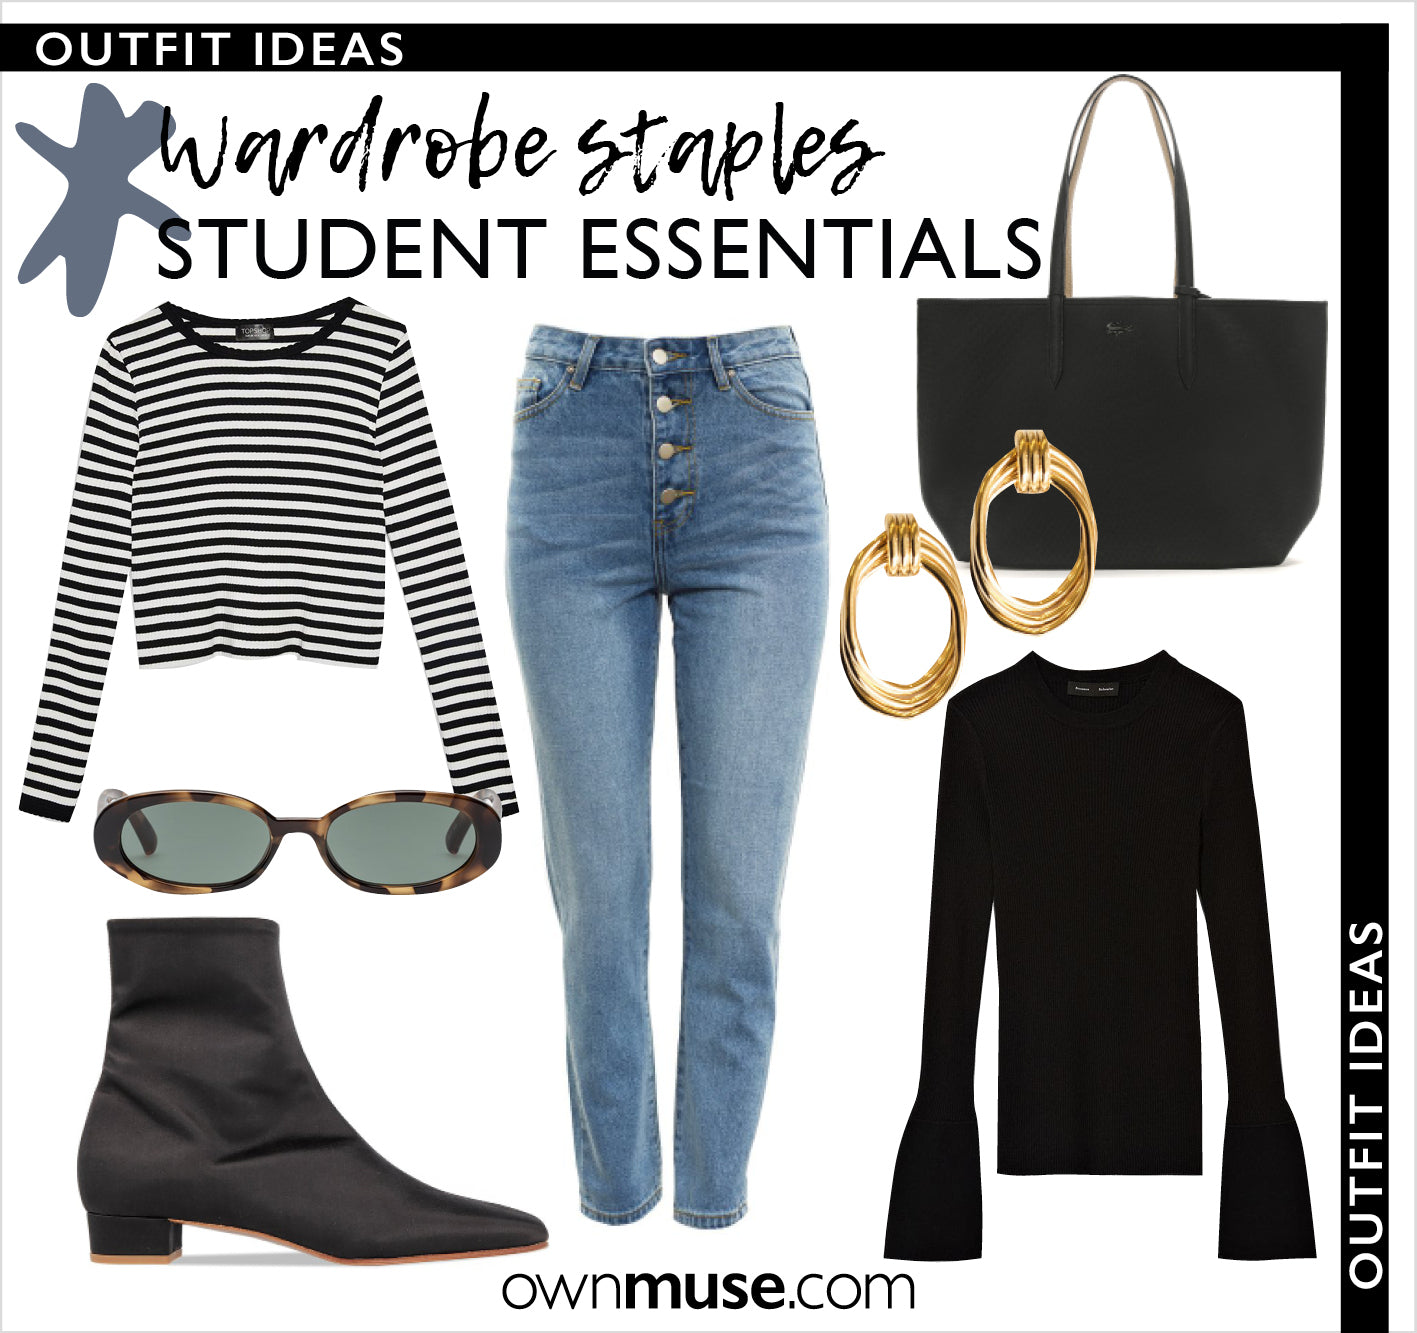 Outfit ideas get the look student collage capsule wardrobe